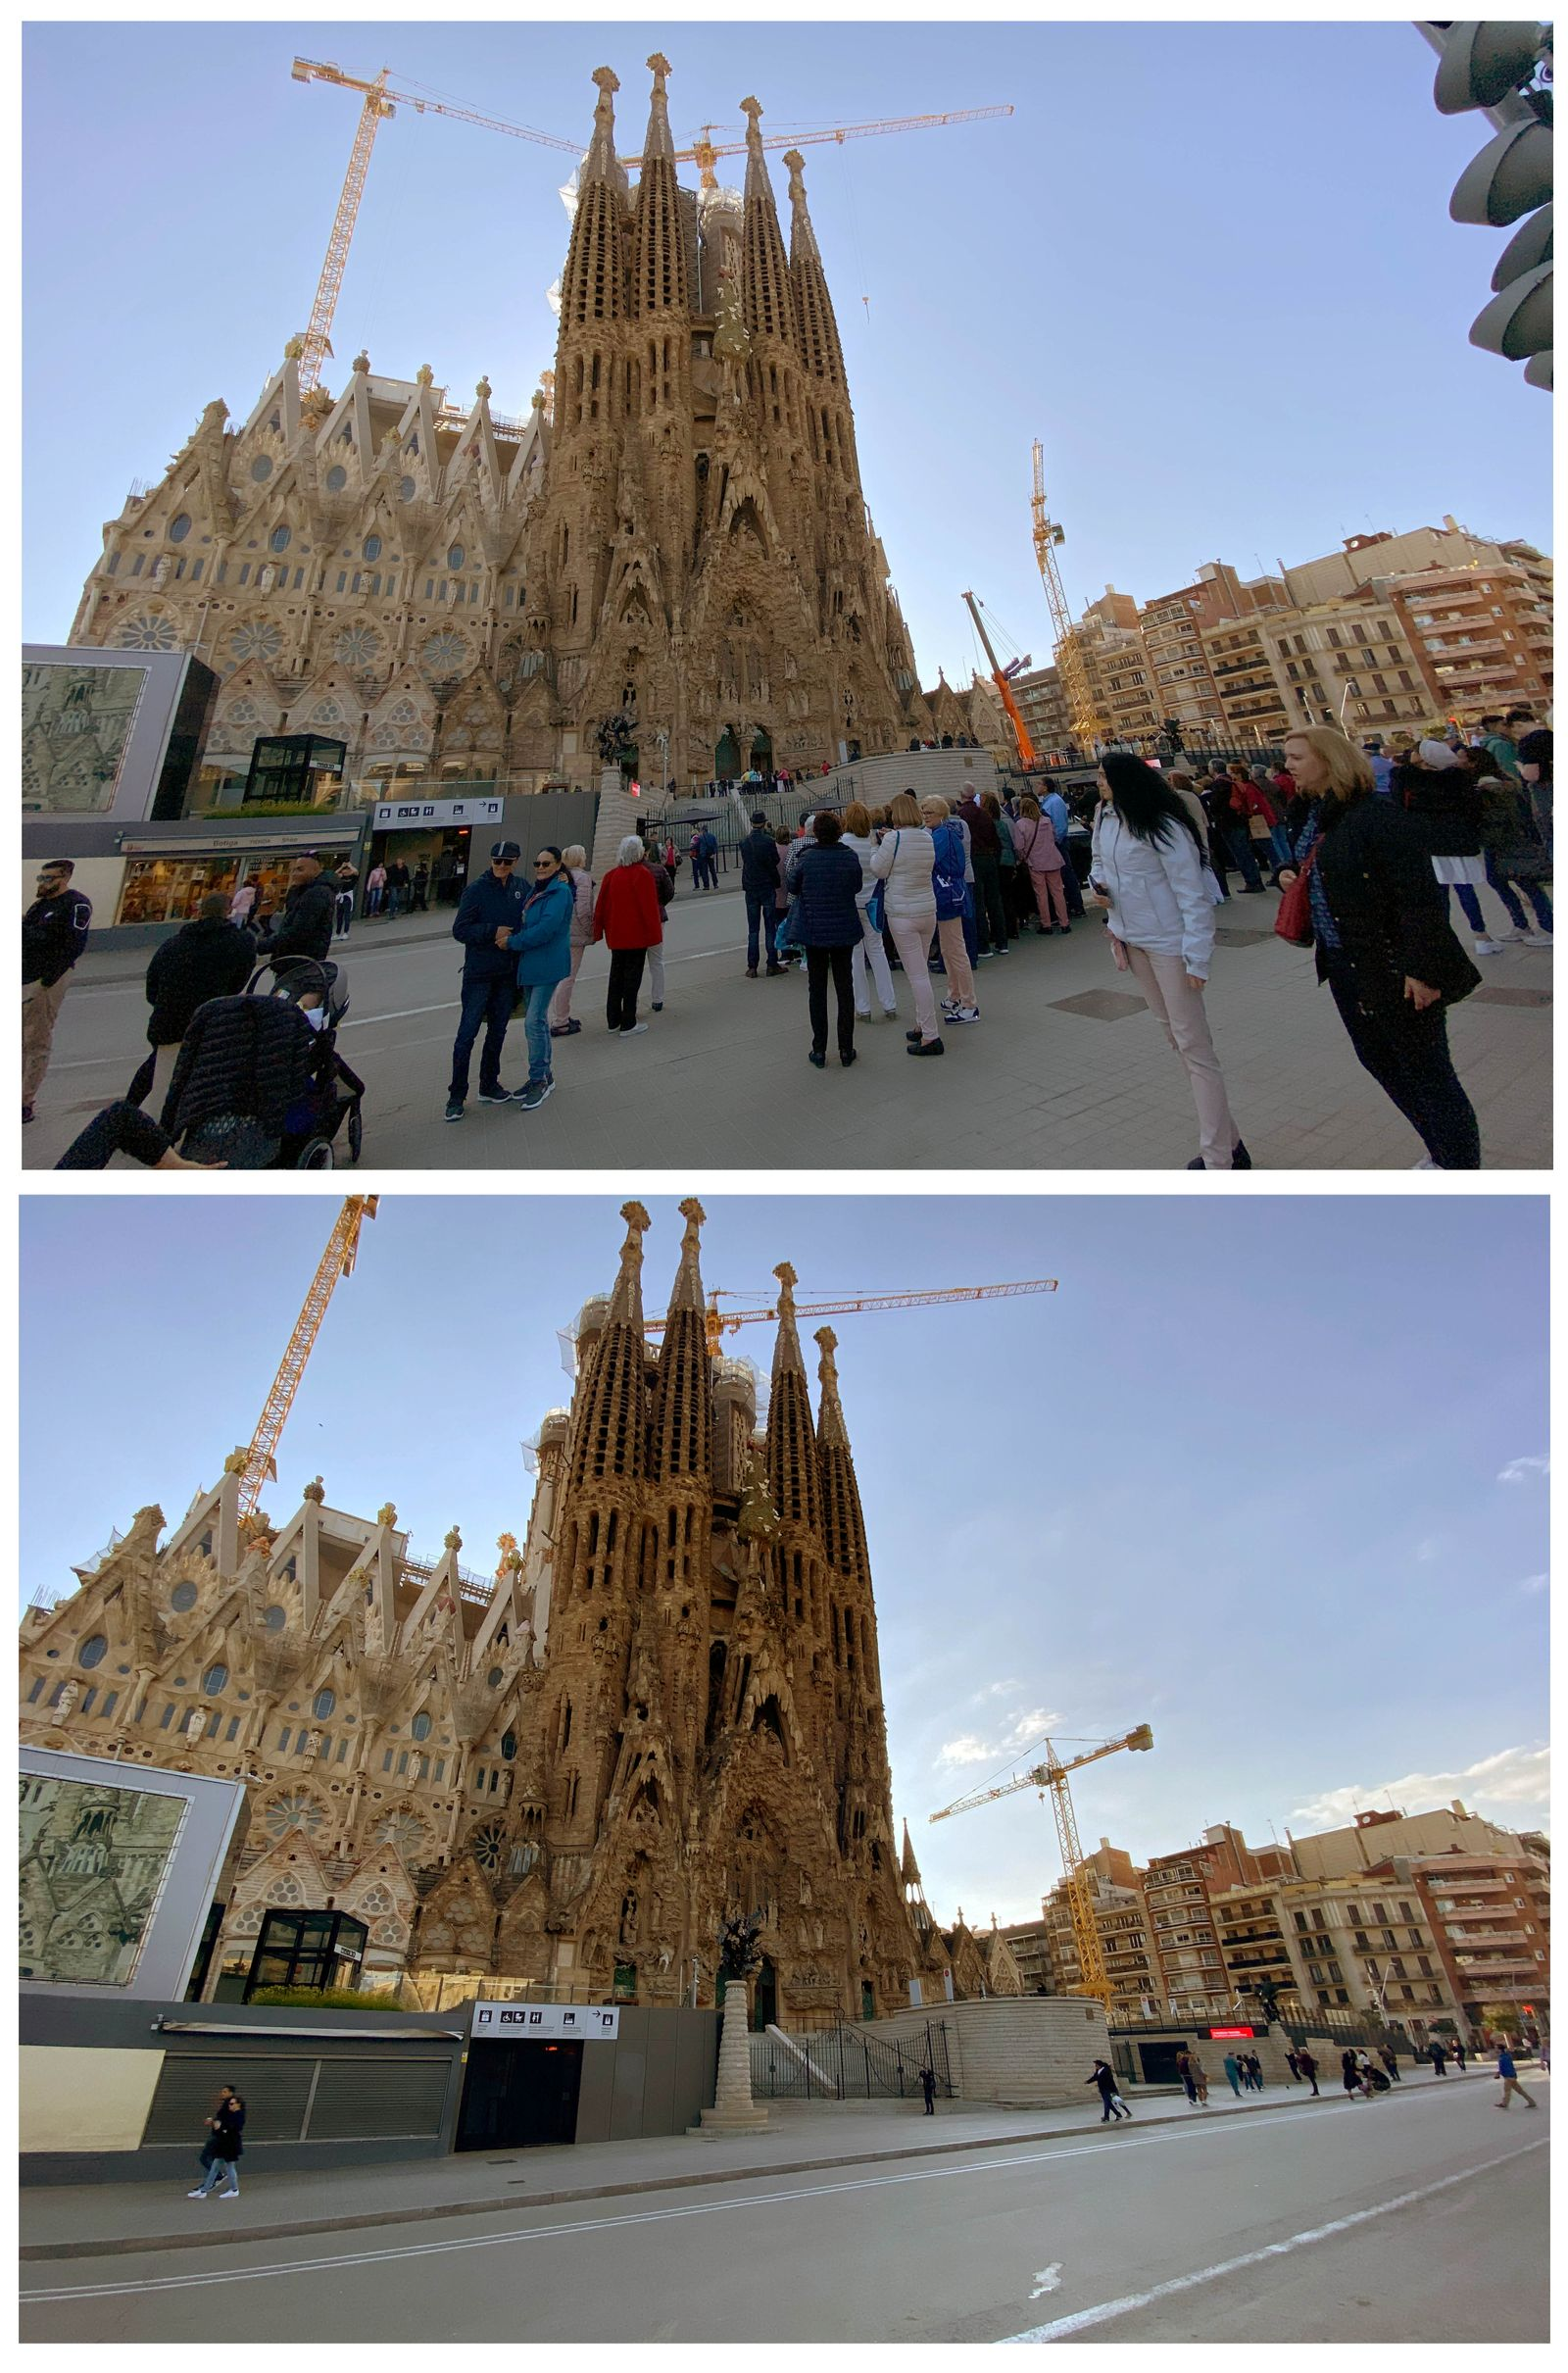 Sagrada Familia basilica, before and after being closed as a precautionary measure due to the coronavirus outbreak in Barcelona